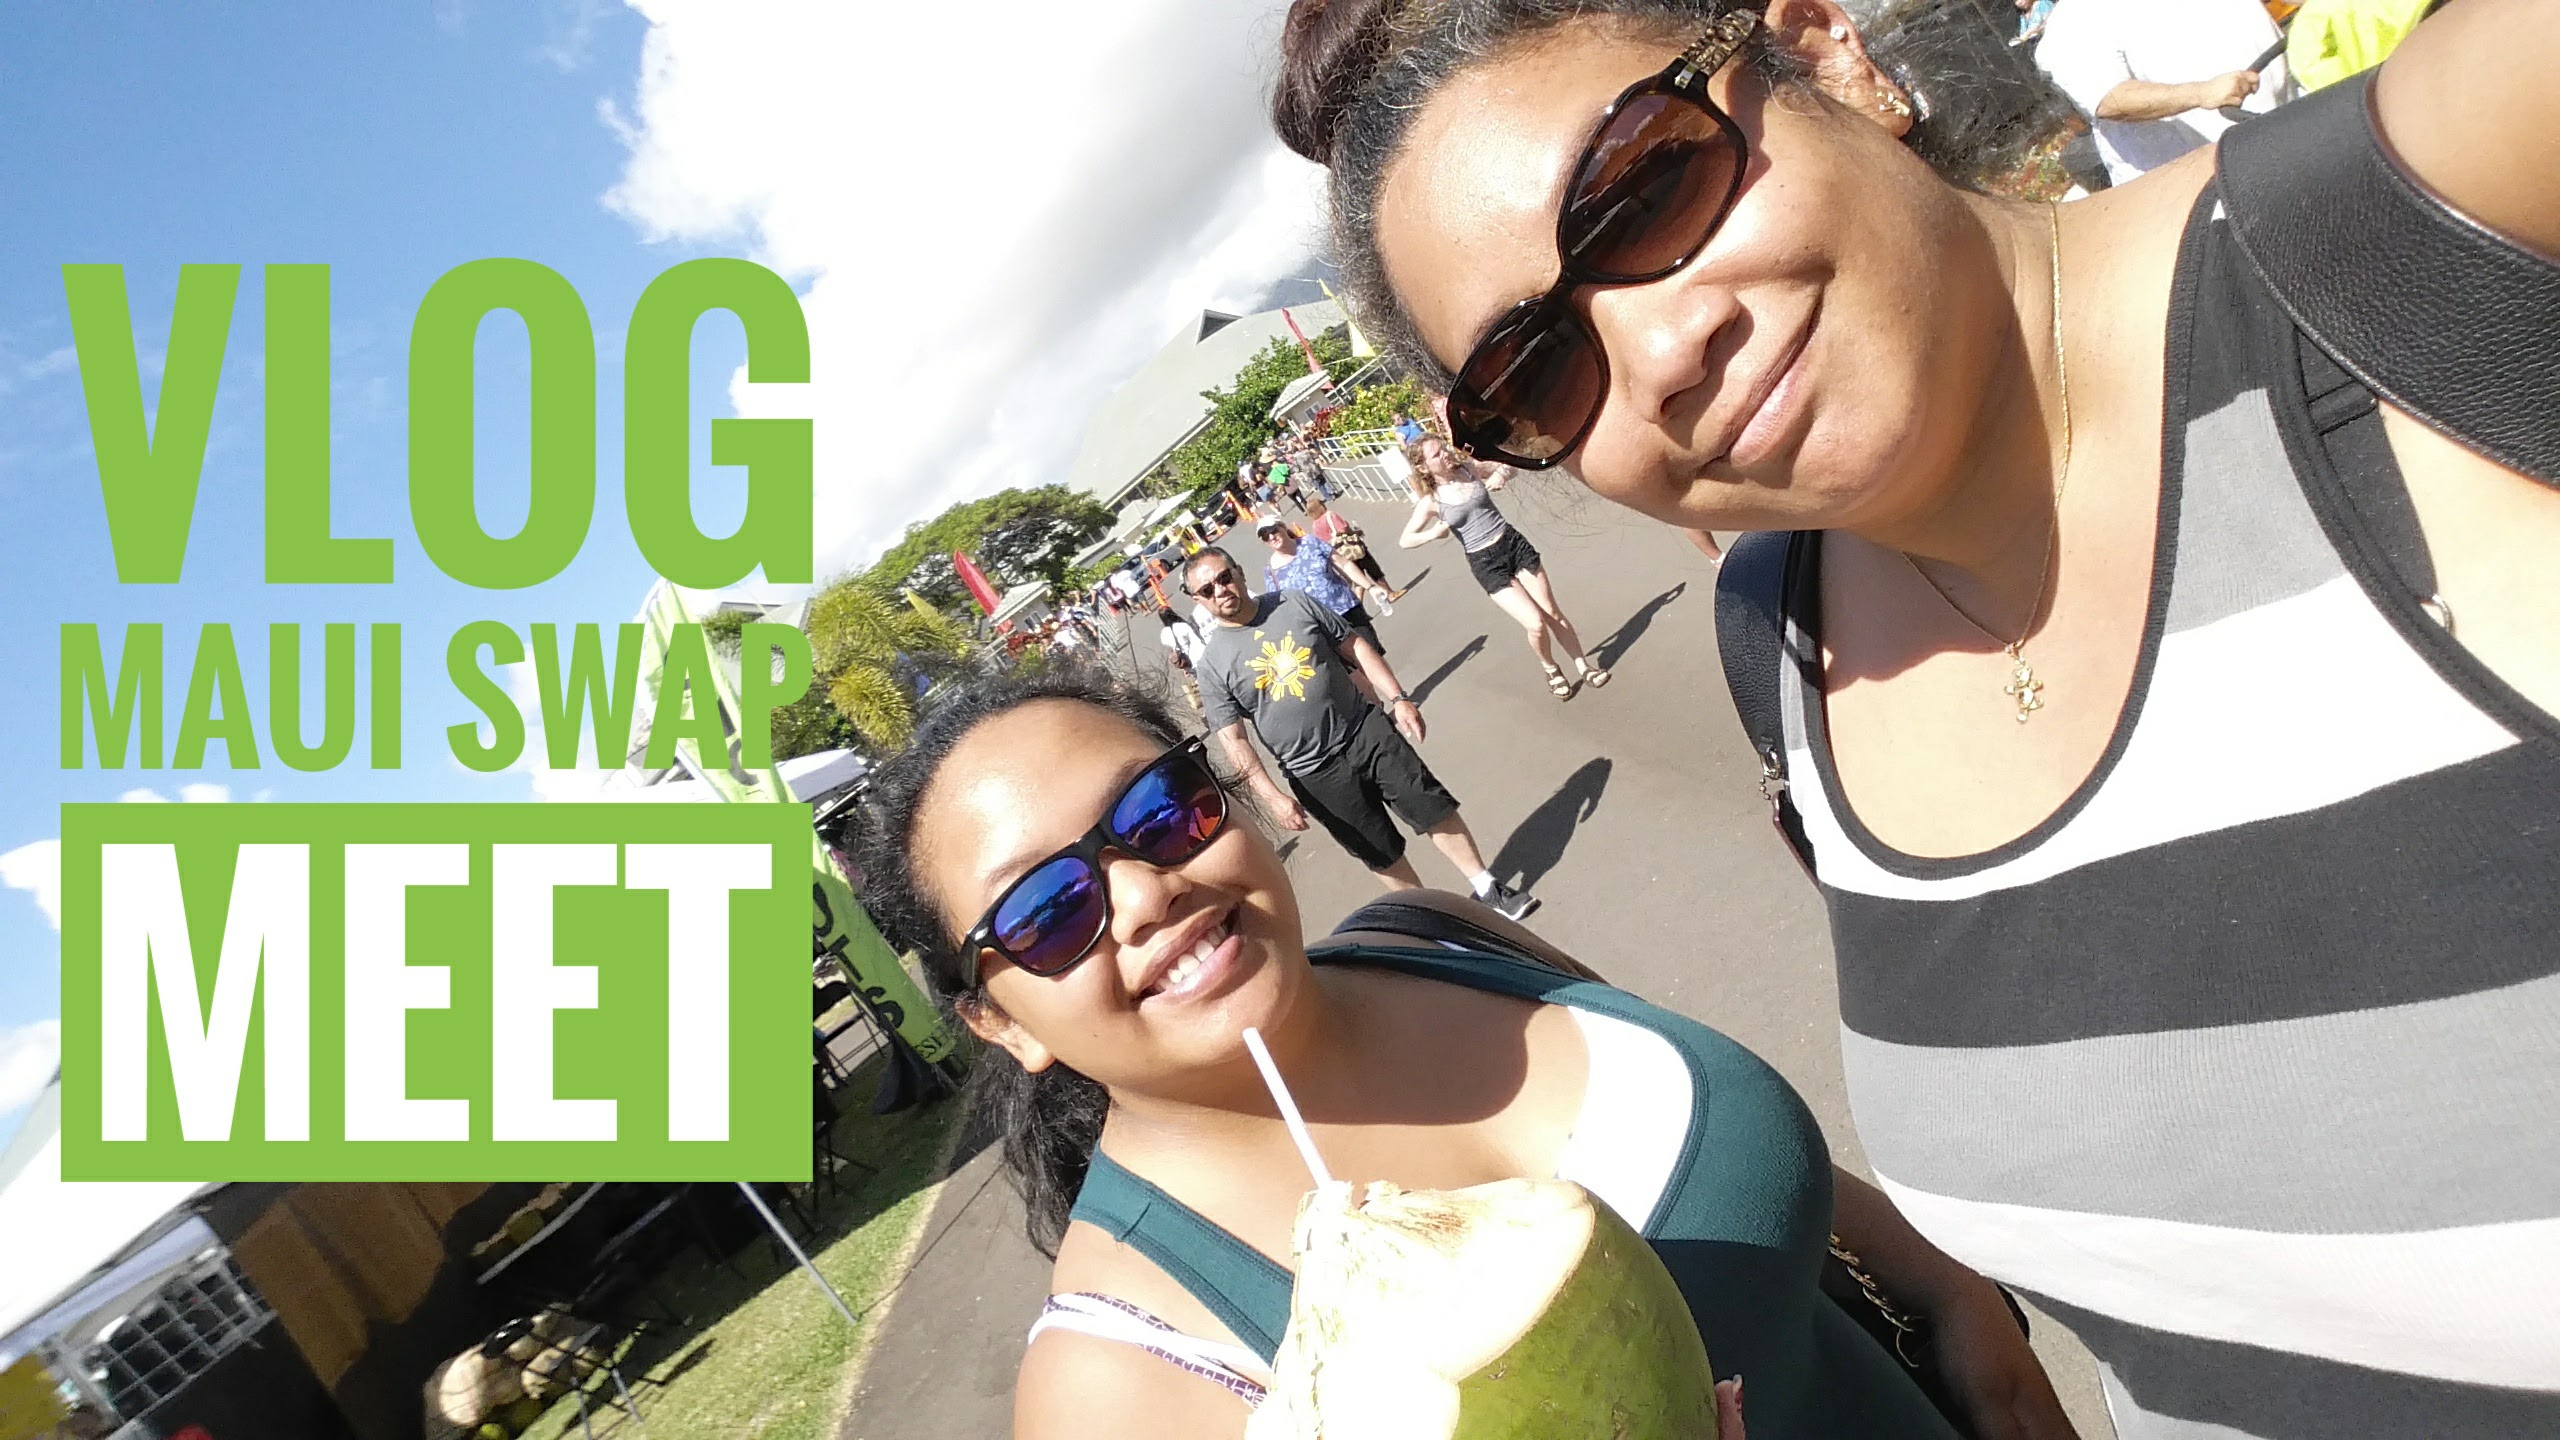 I'm Back With a New Video – A Day In The Life, Maui Vlog – Maui Swap Meet